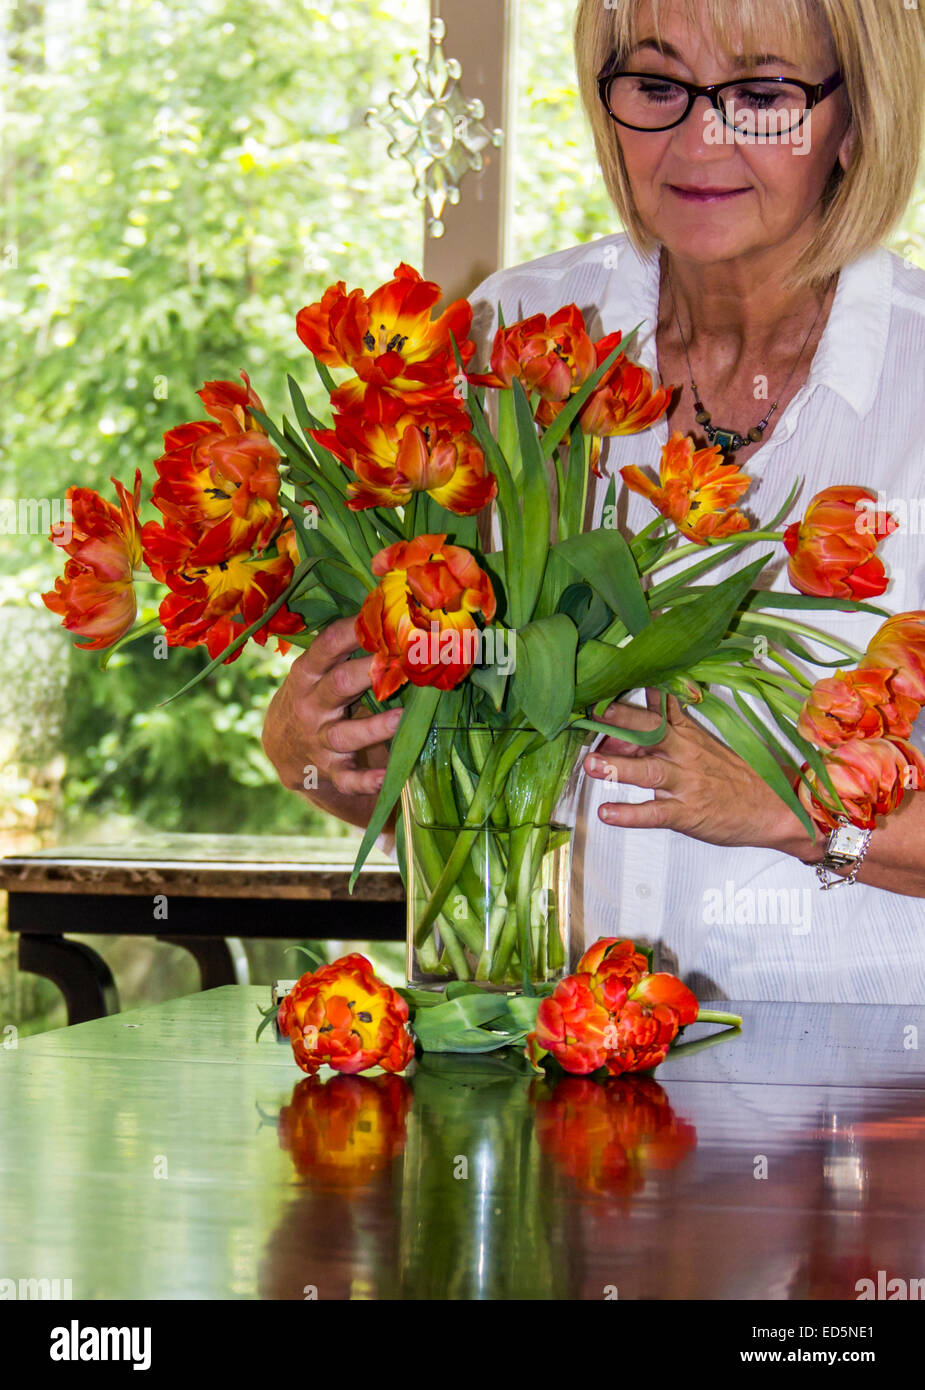 Mature adult caucasian woman arranging a vase of flowers or tulips in a bright home with windows. - Stock Image